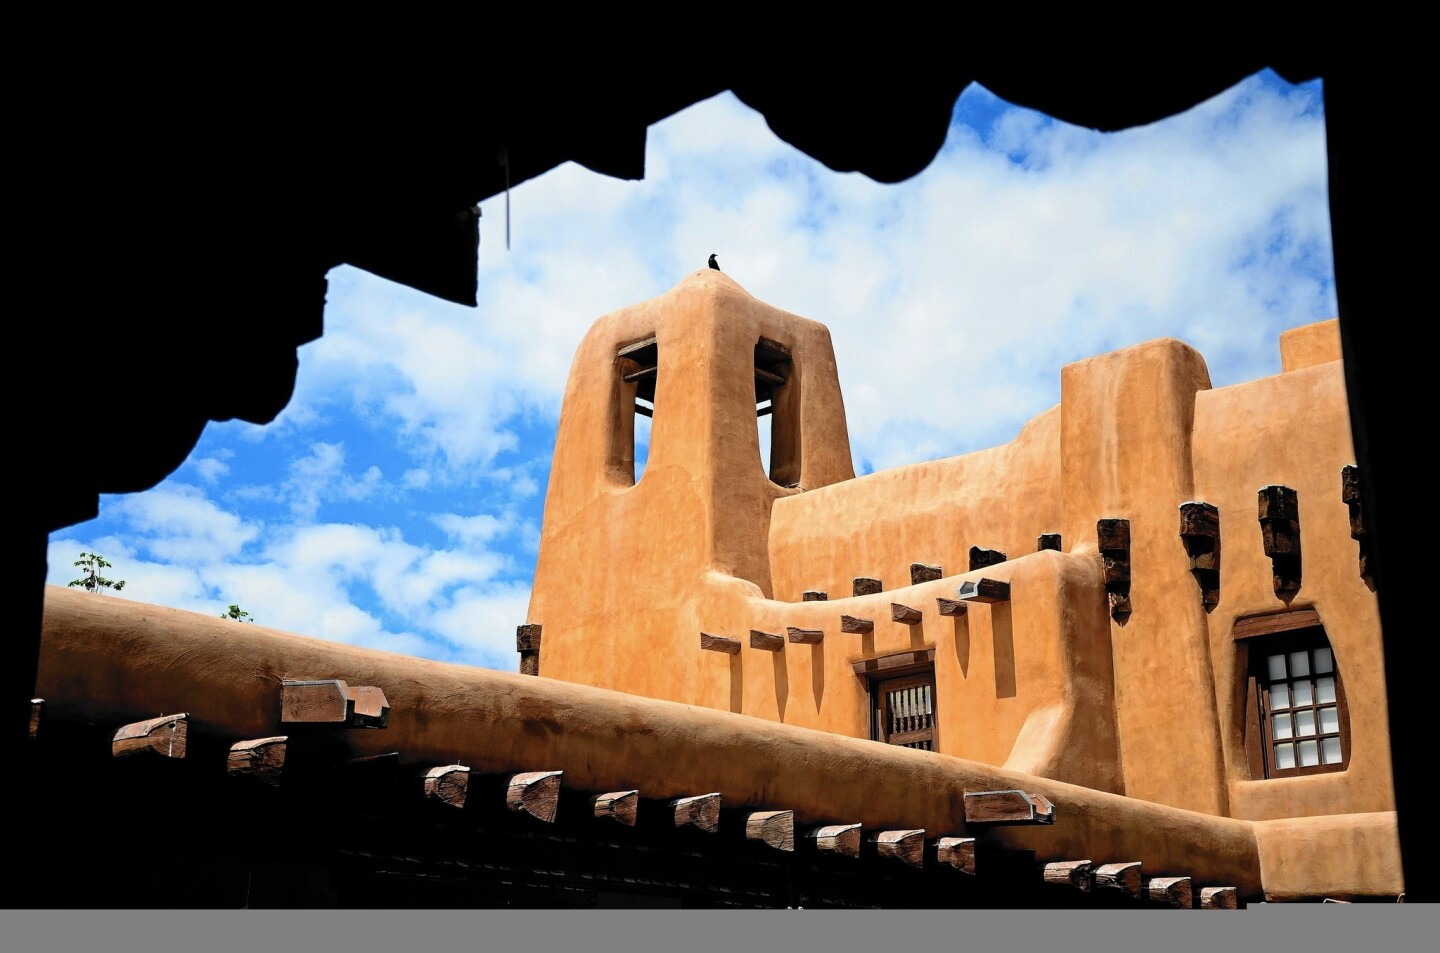 The New Mexico Museum of Art exemplifies the distinctive architecture of Santa Fe.